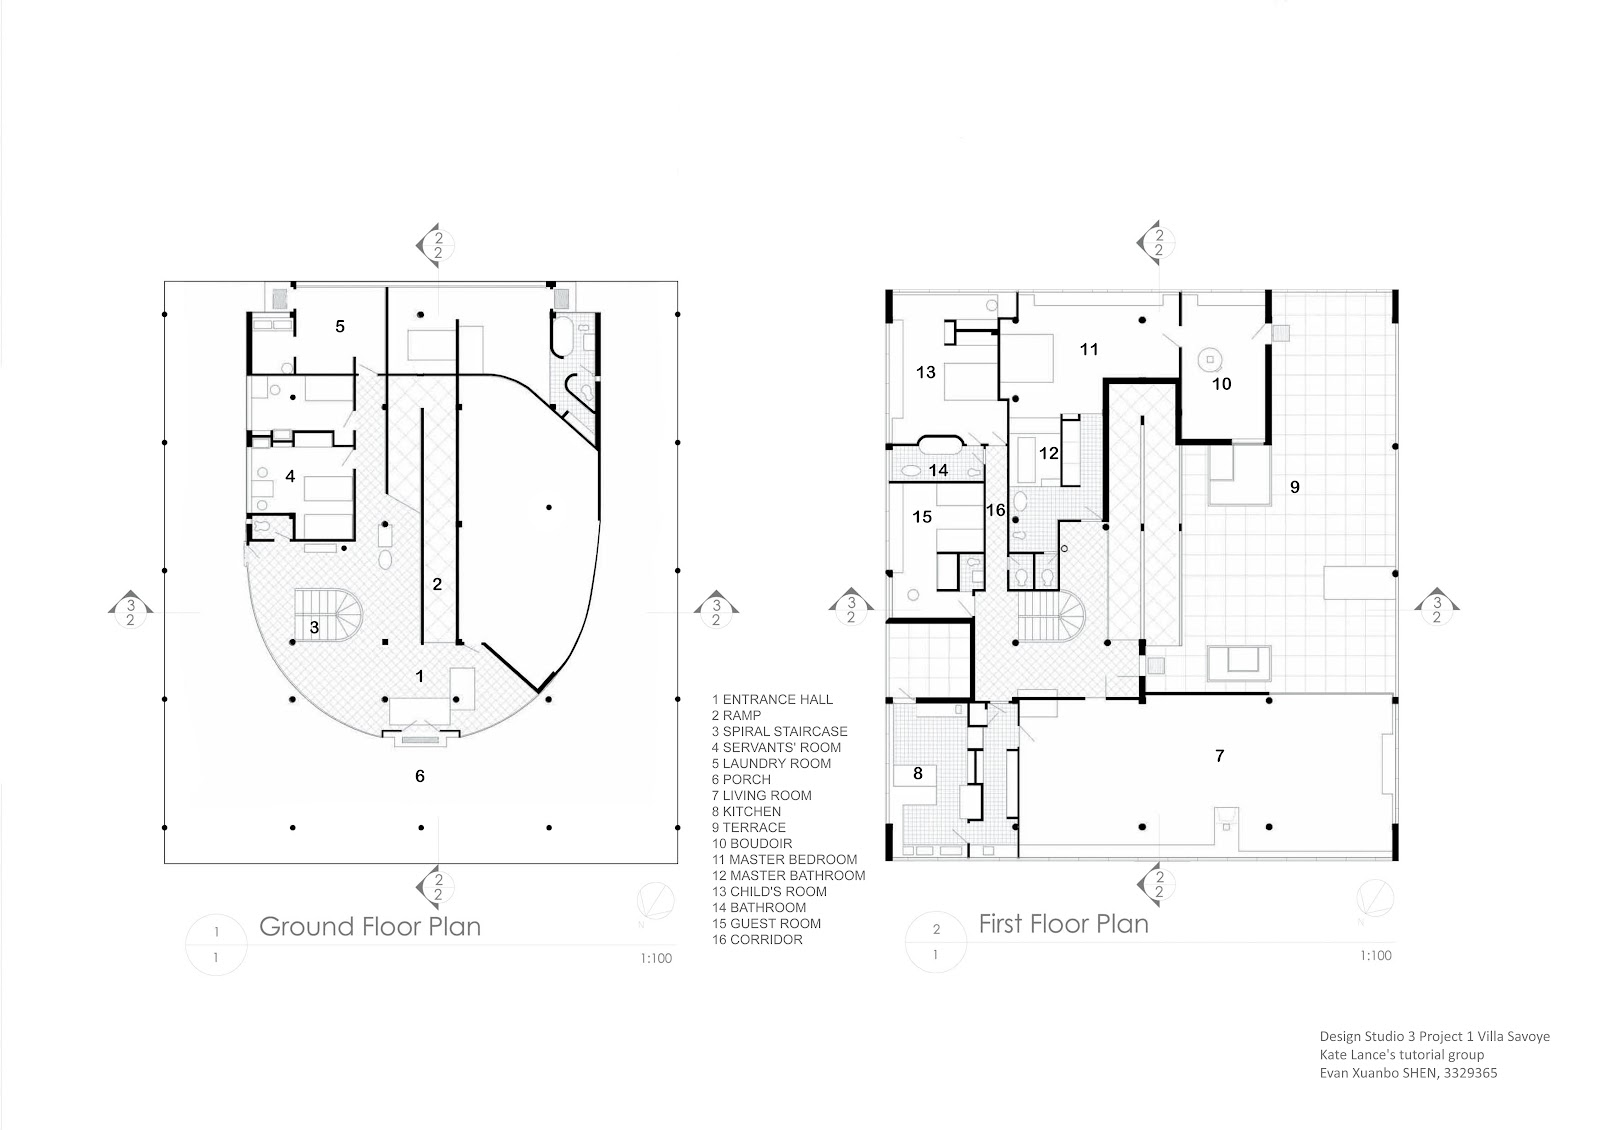 villa savoye plan dimensions pssucai villa savoye 2nd floor plan thursday 15 march 2012villa savoye plan dimensions